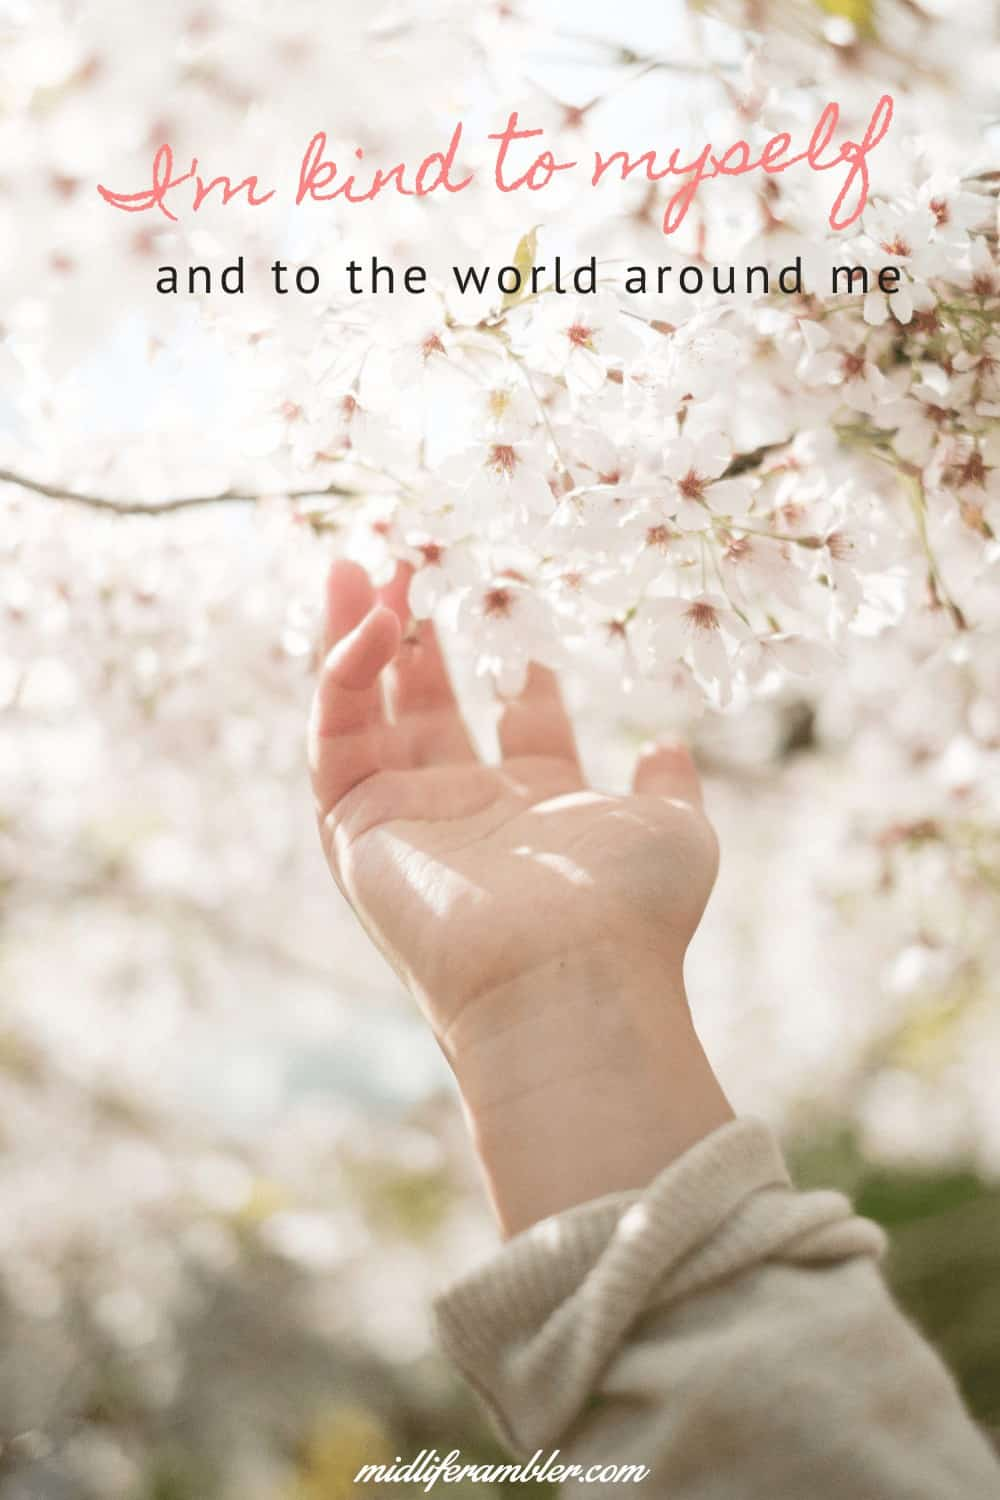 Affirmations for Self-Compassion - I'm kind to myself and to the world around me.